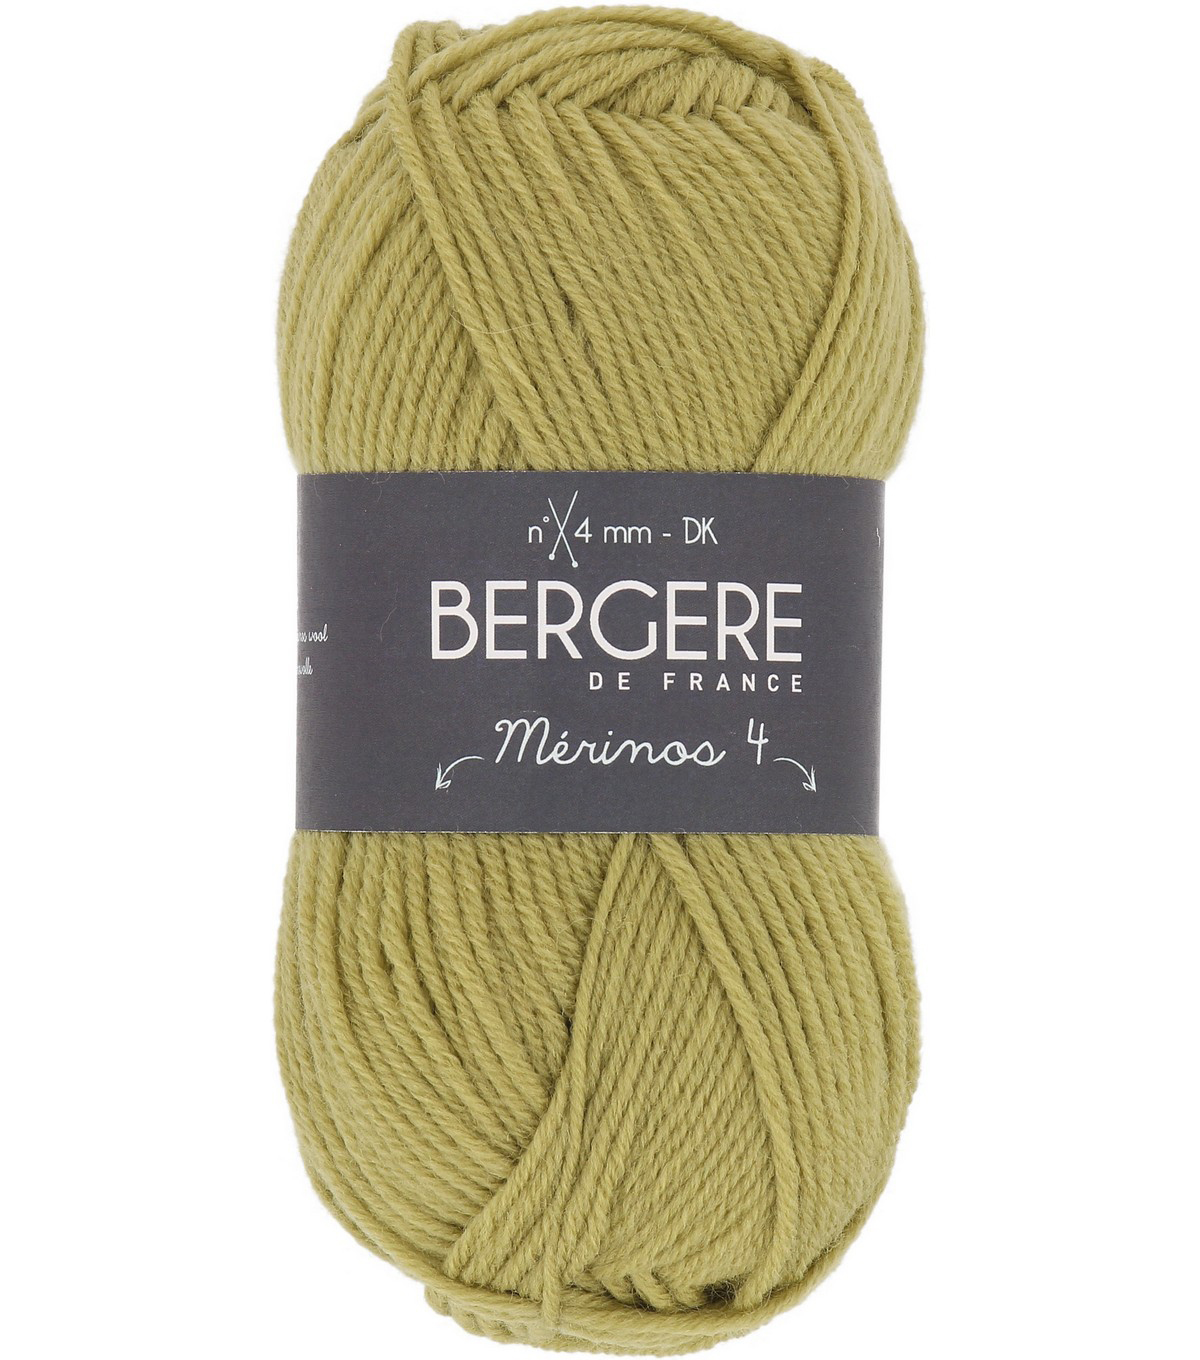 Bergere De France Merinos 4 Yarn, Fougere